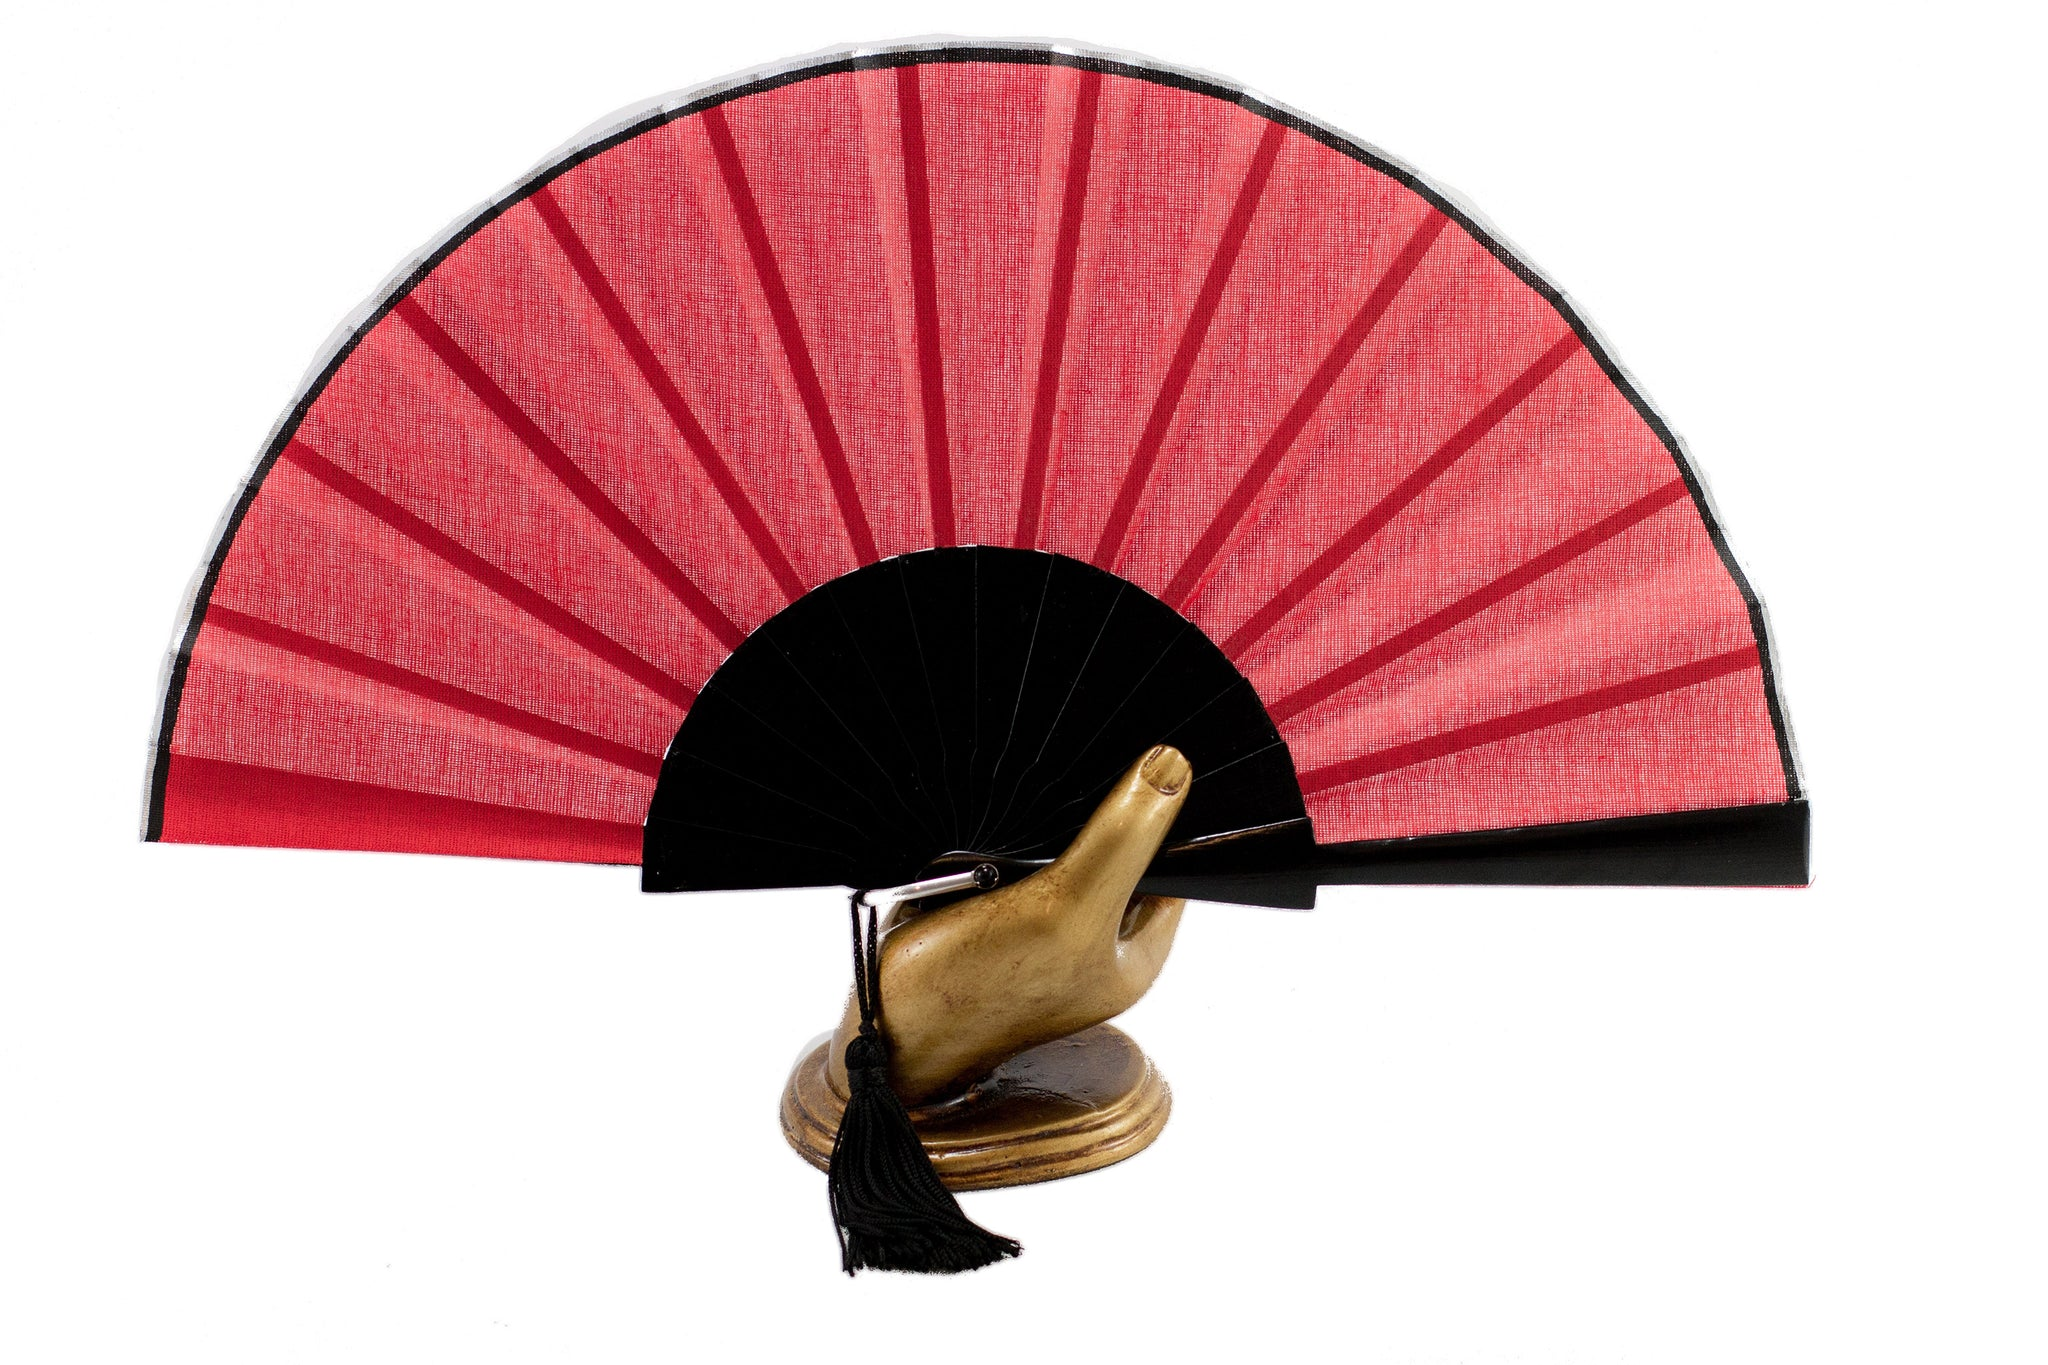 Red Glastonbury festival hand fan